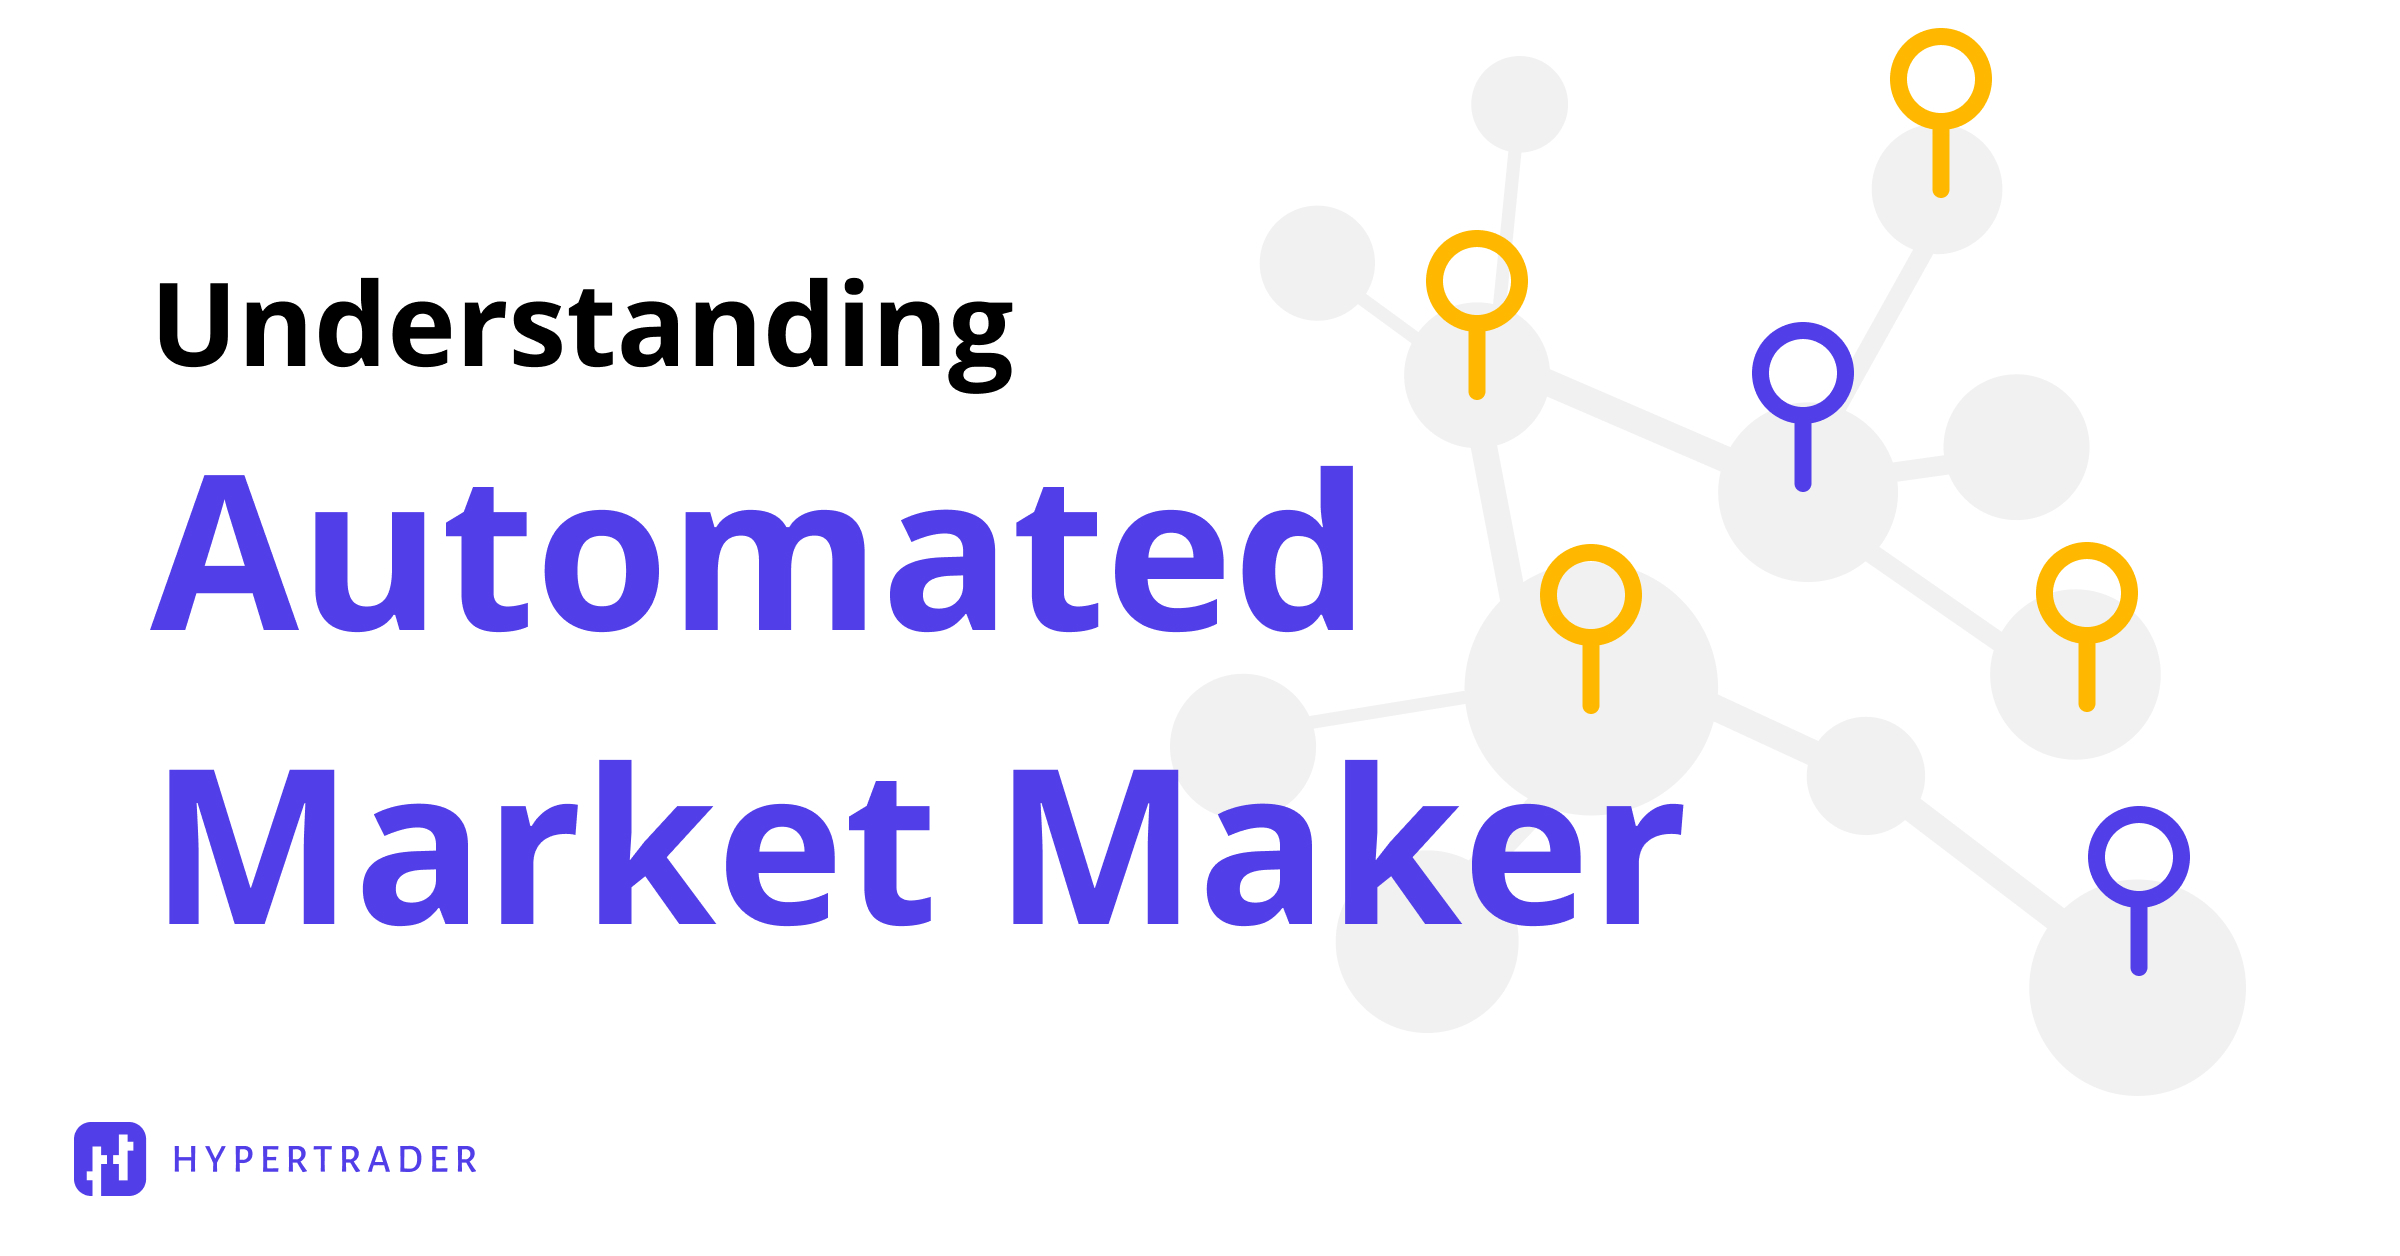 What are Automated Market Makers?